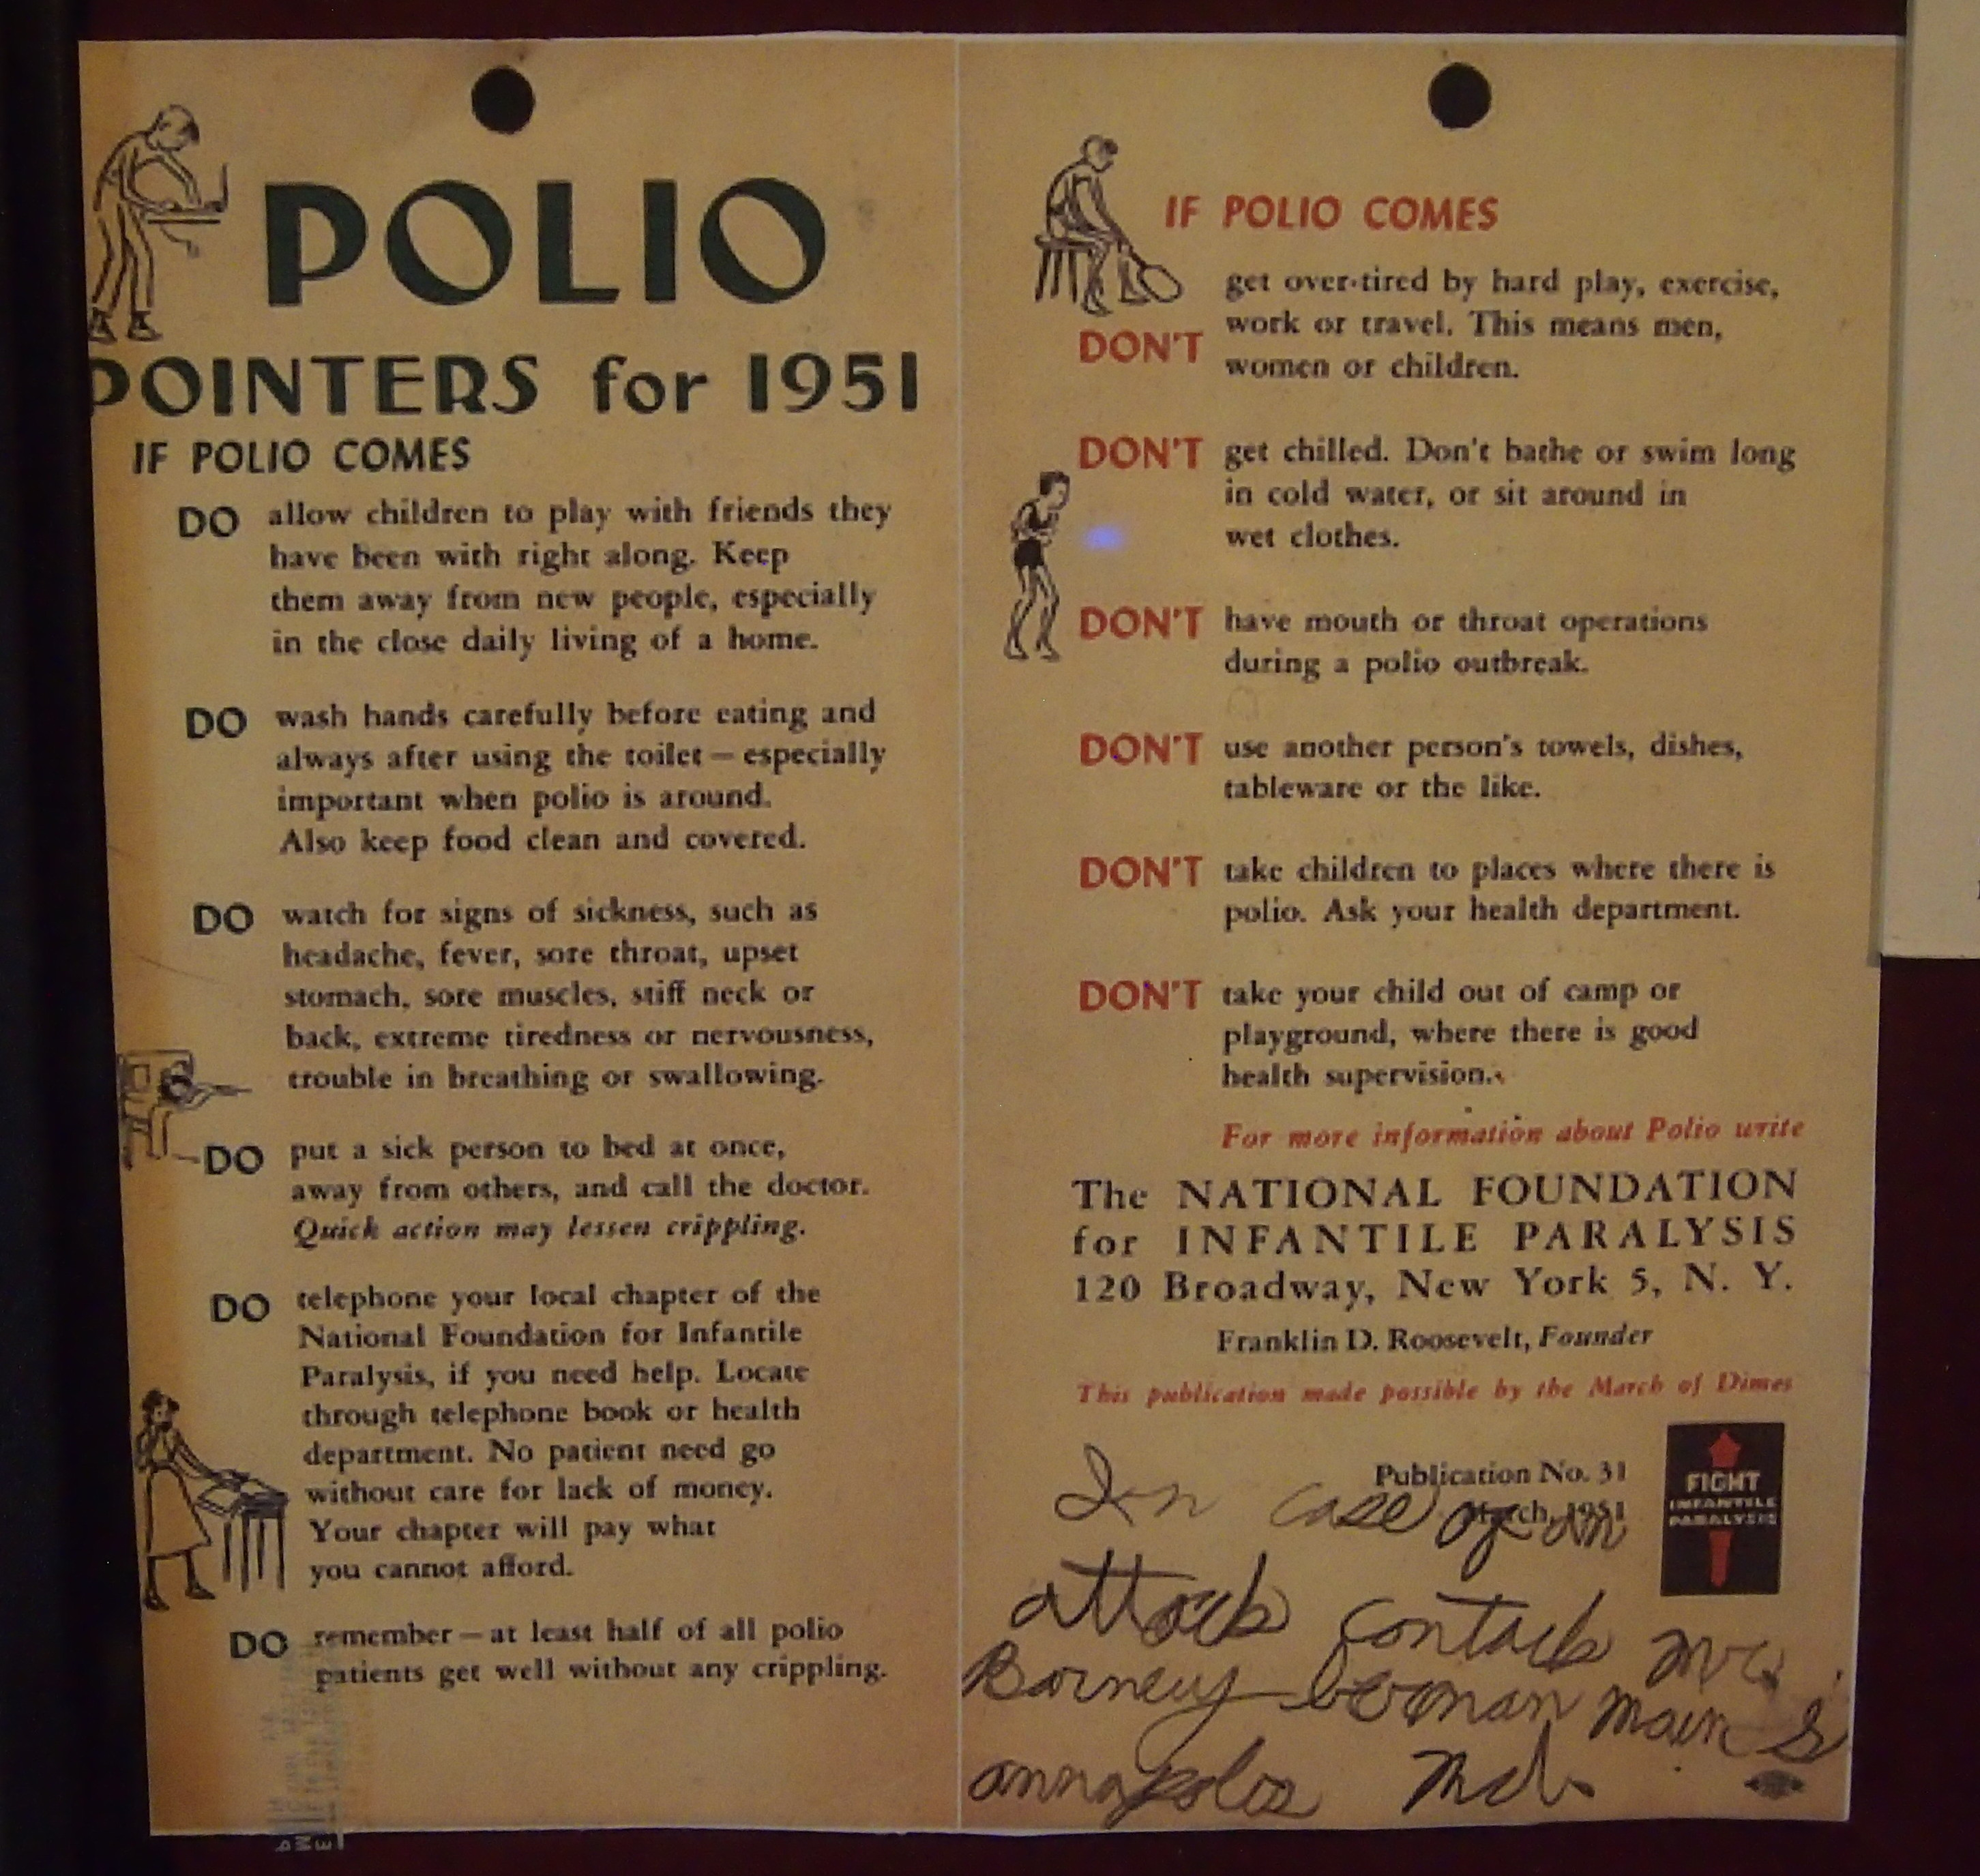 Polio Pamphlet 1951